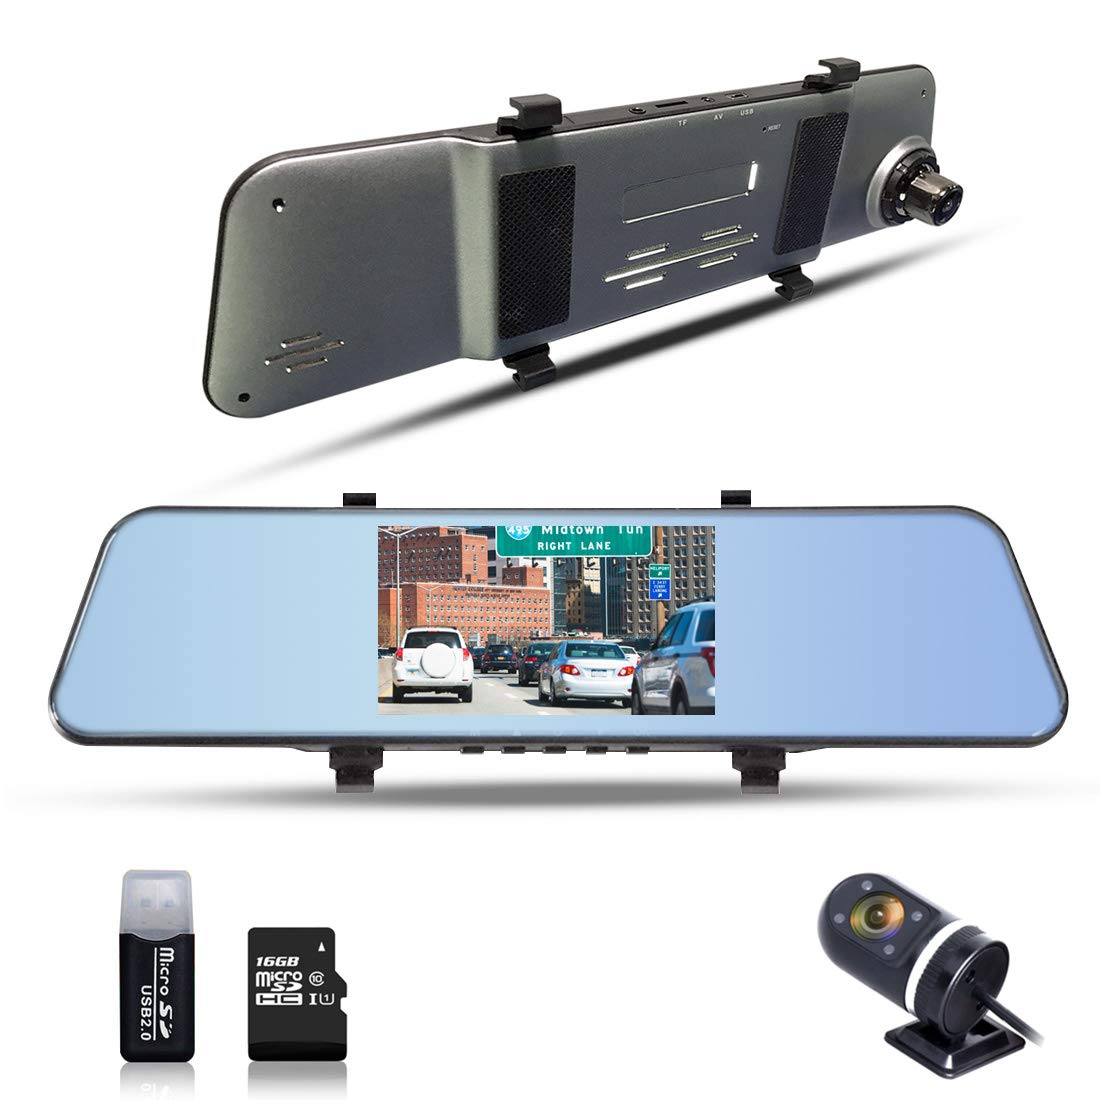 1296P Mirror Cam Dual Lens Dashboard Camera with 170° Wide Angle 5'' Display ADAS Function